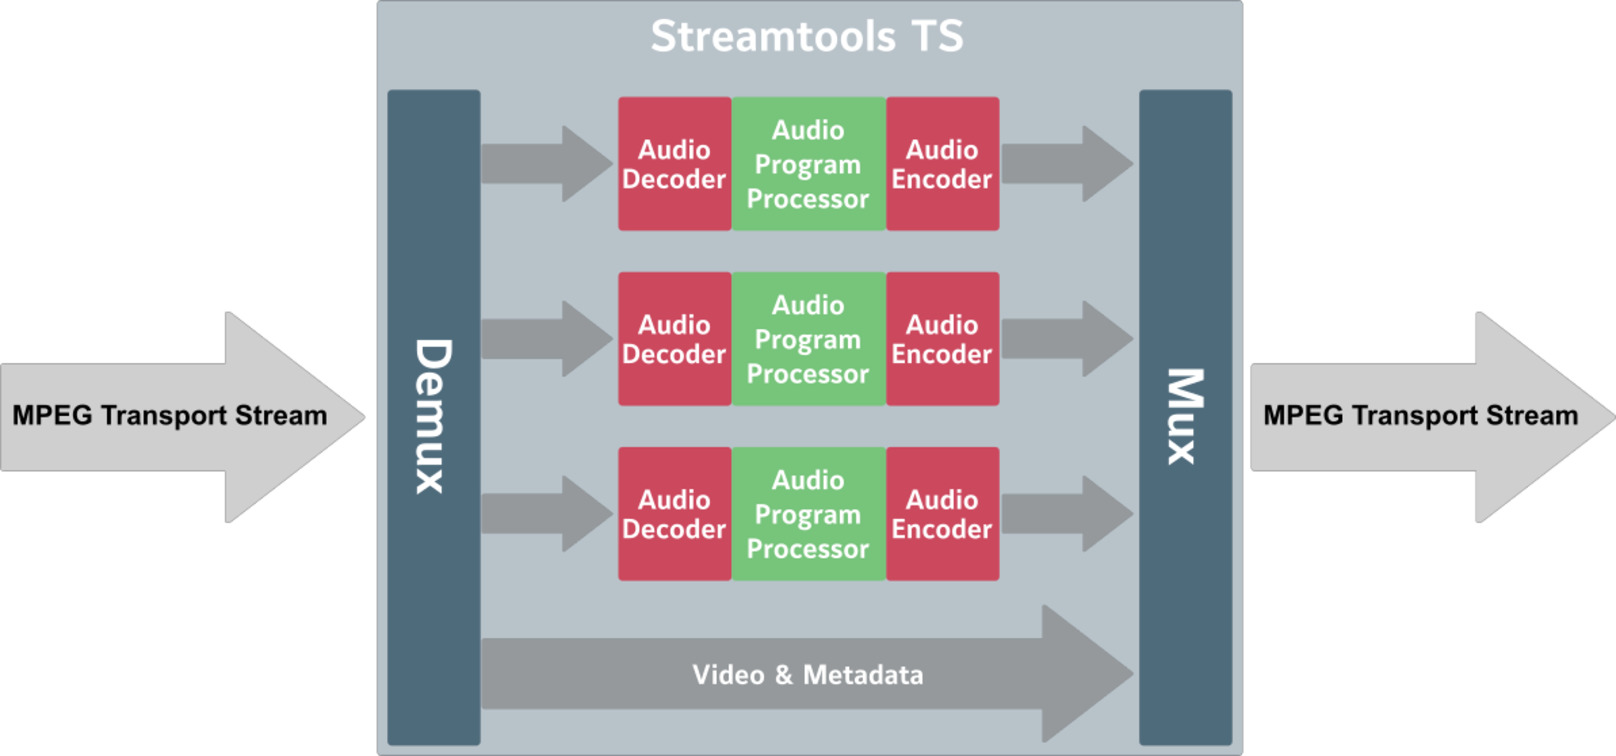 Streamtools TS - MPEG TS Audio Processor - flexAI - Jünger Audio